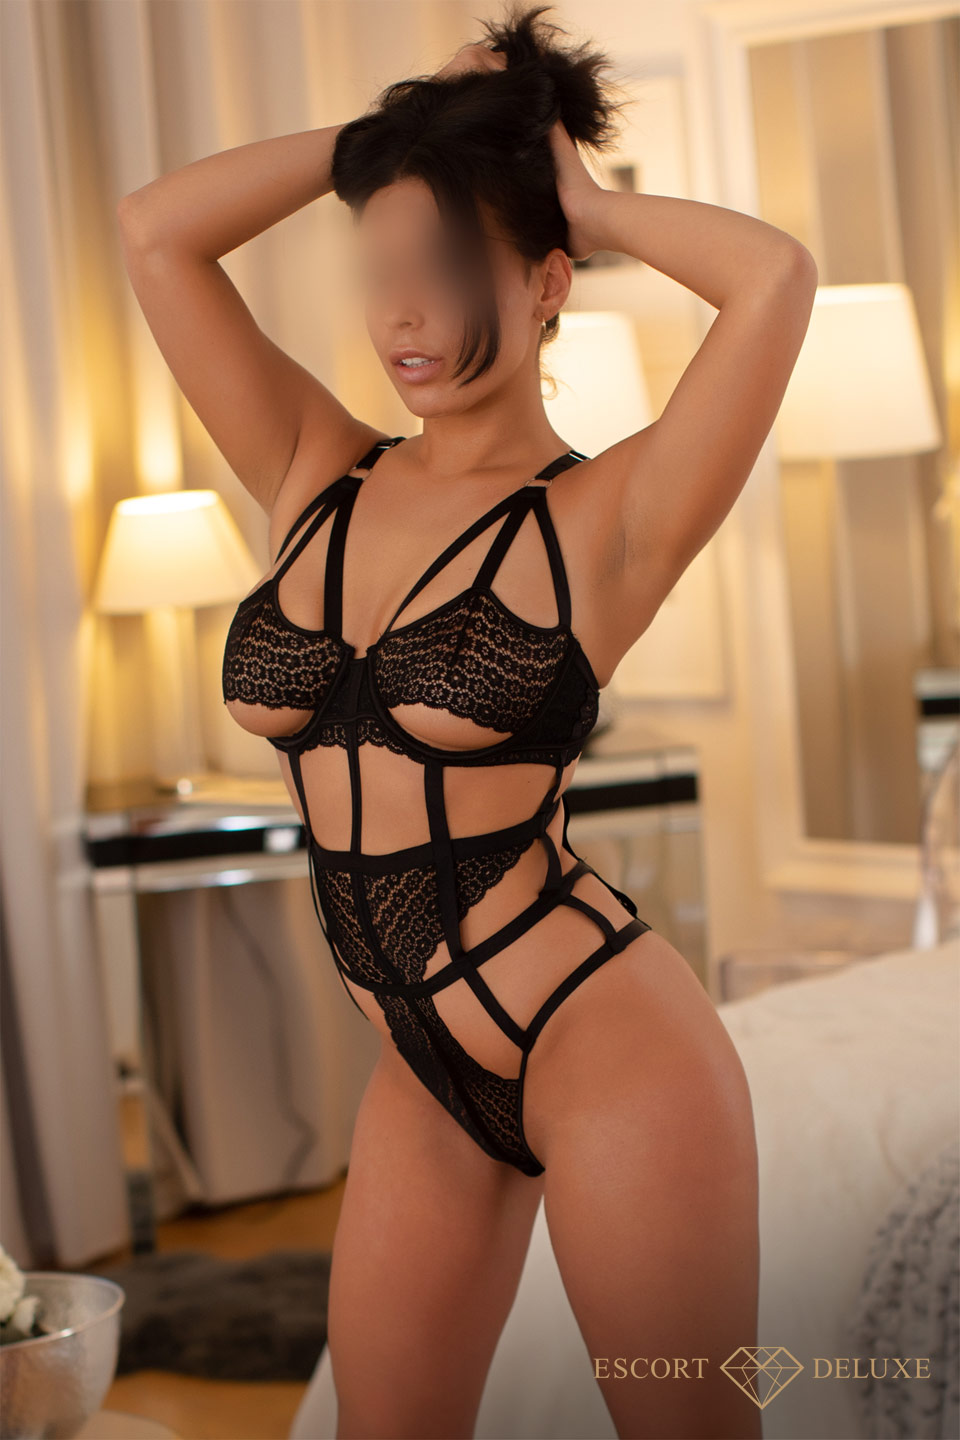 Escort Model schaut in die Kamera